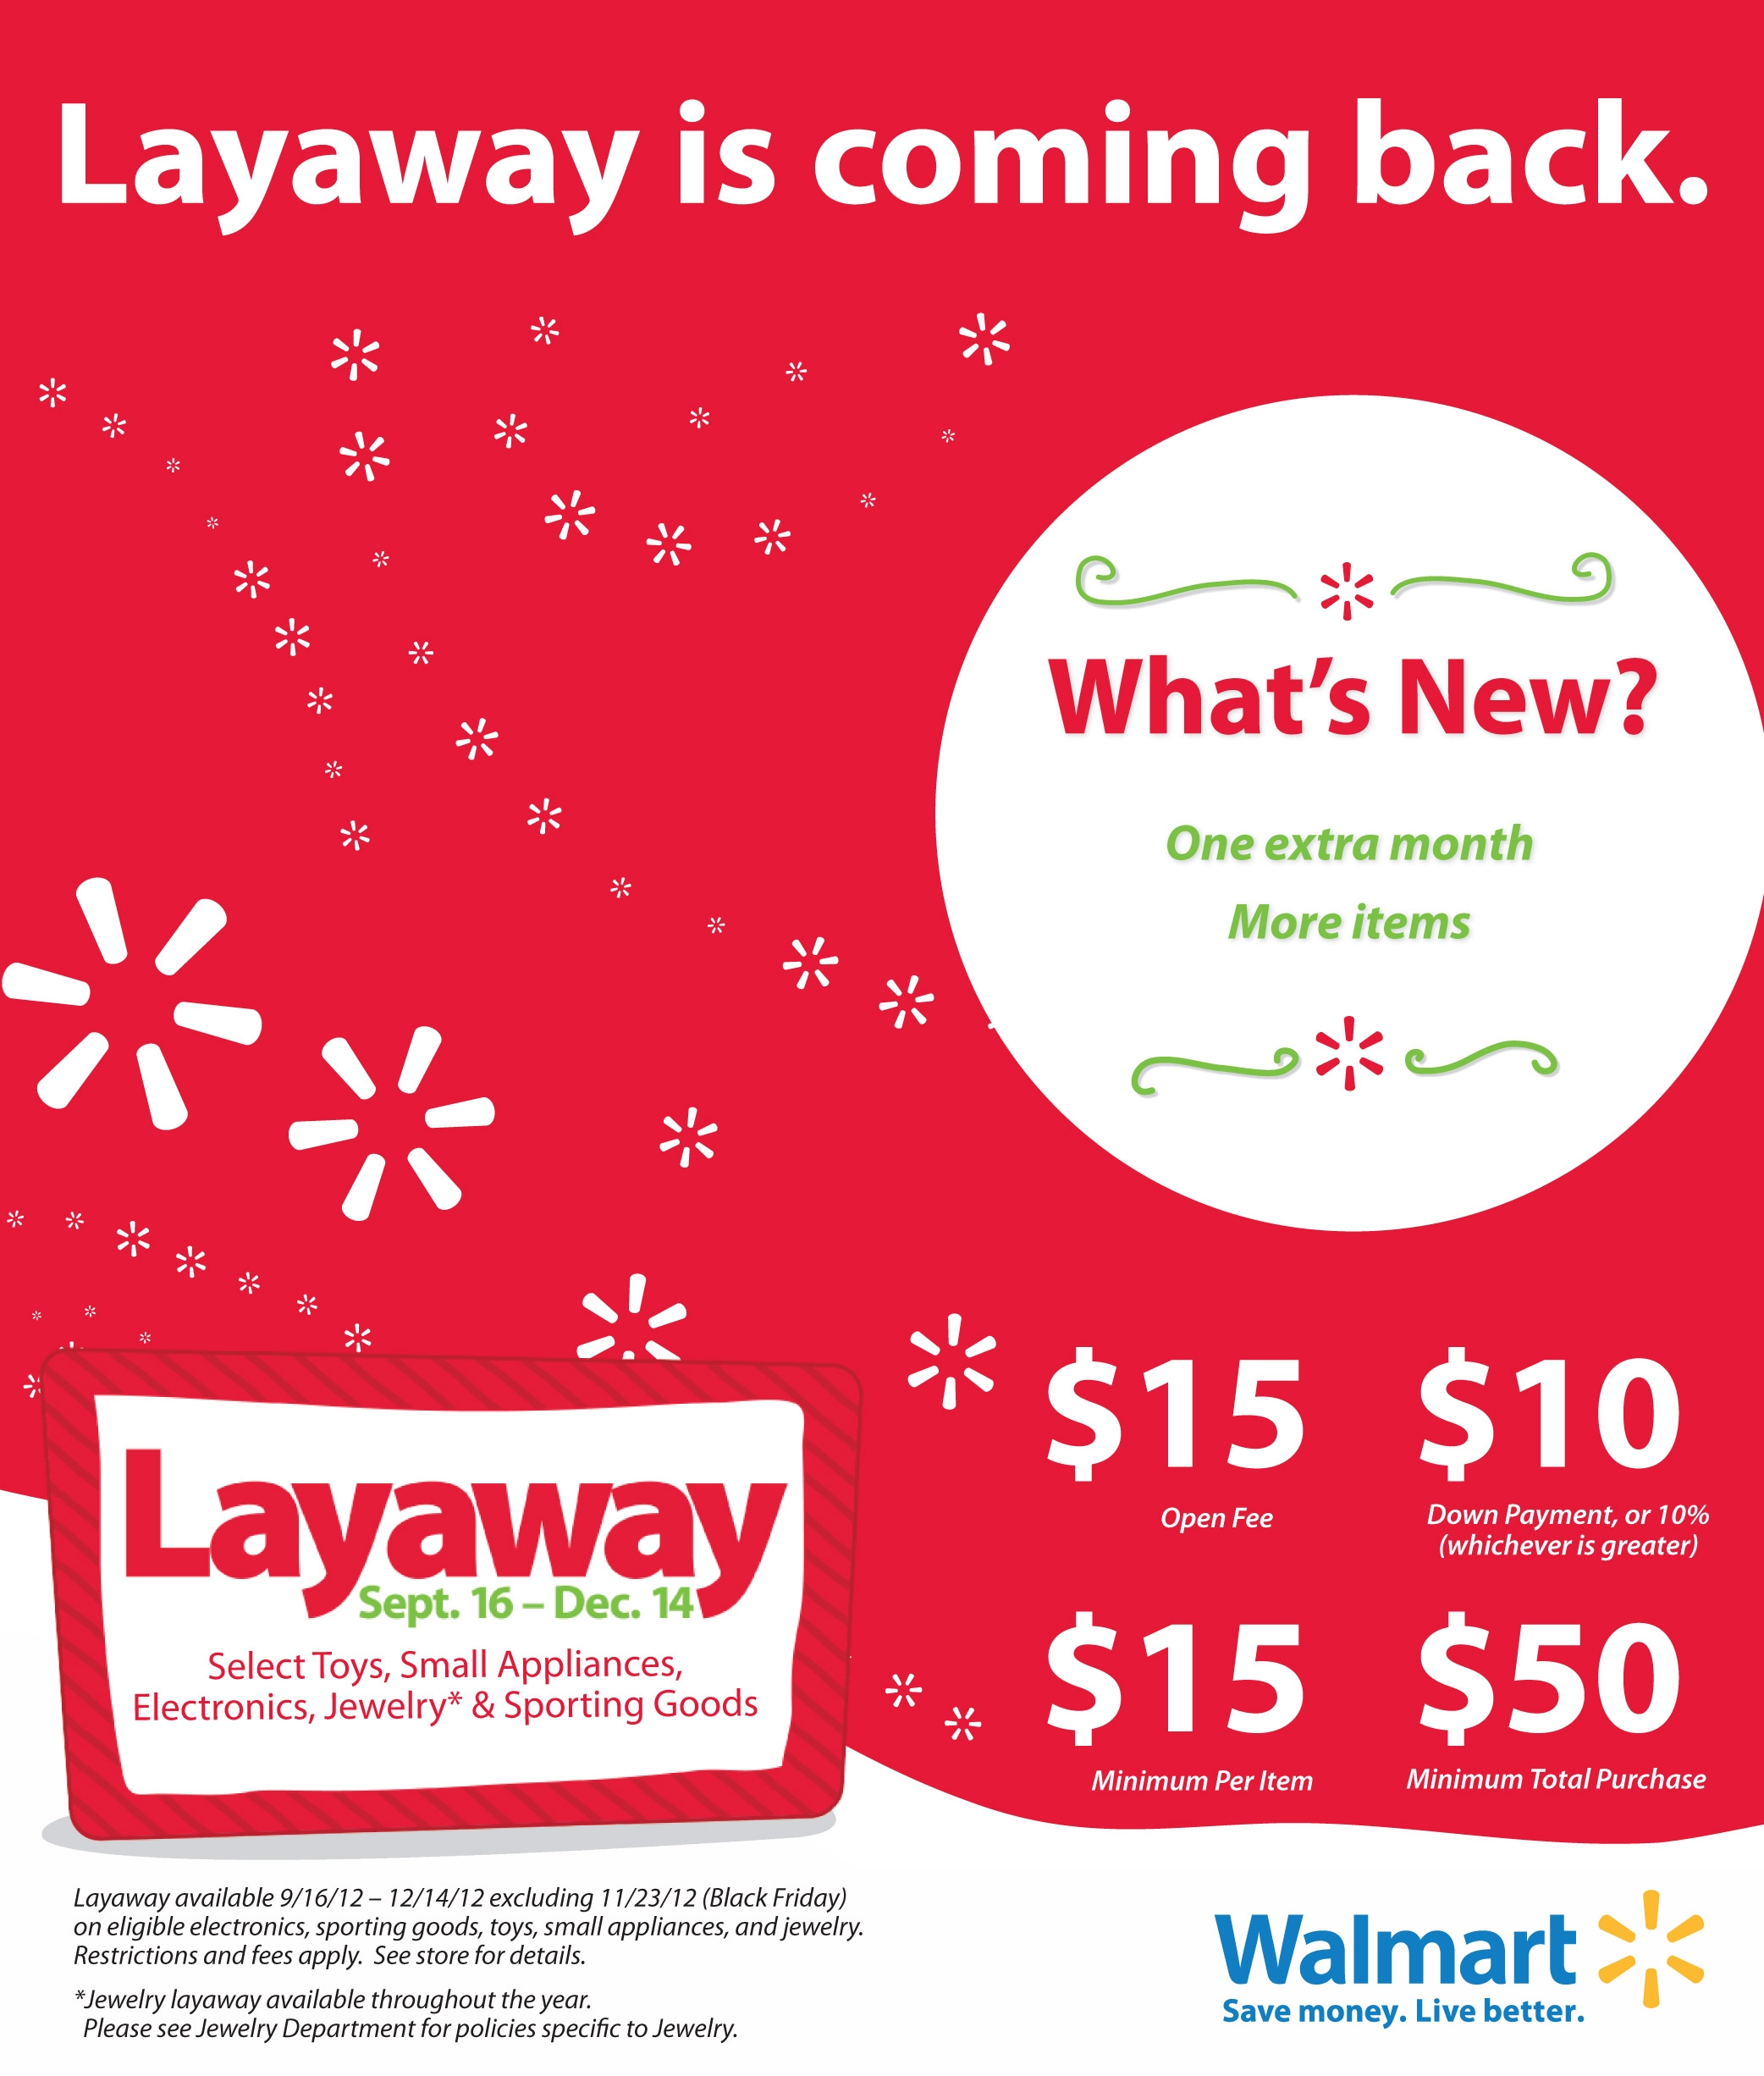 Is Wal Mart Open On Christmas.Christmas Layaway Is Back And Better At Walmart